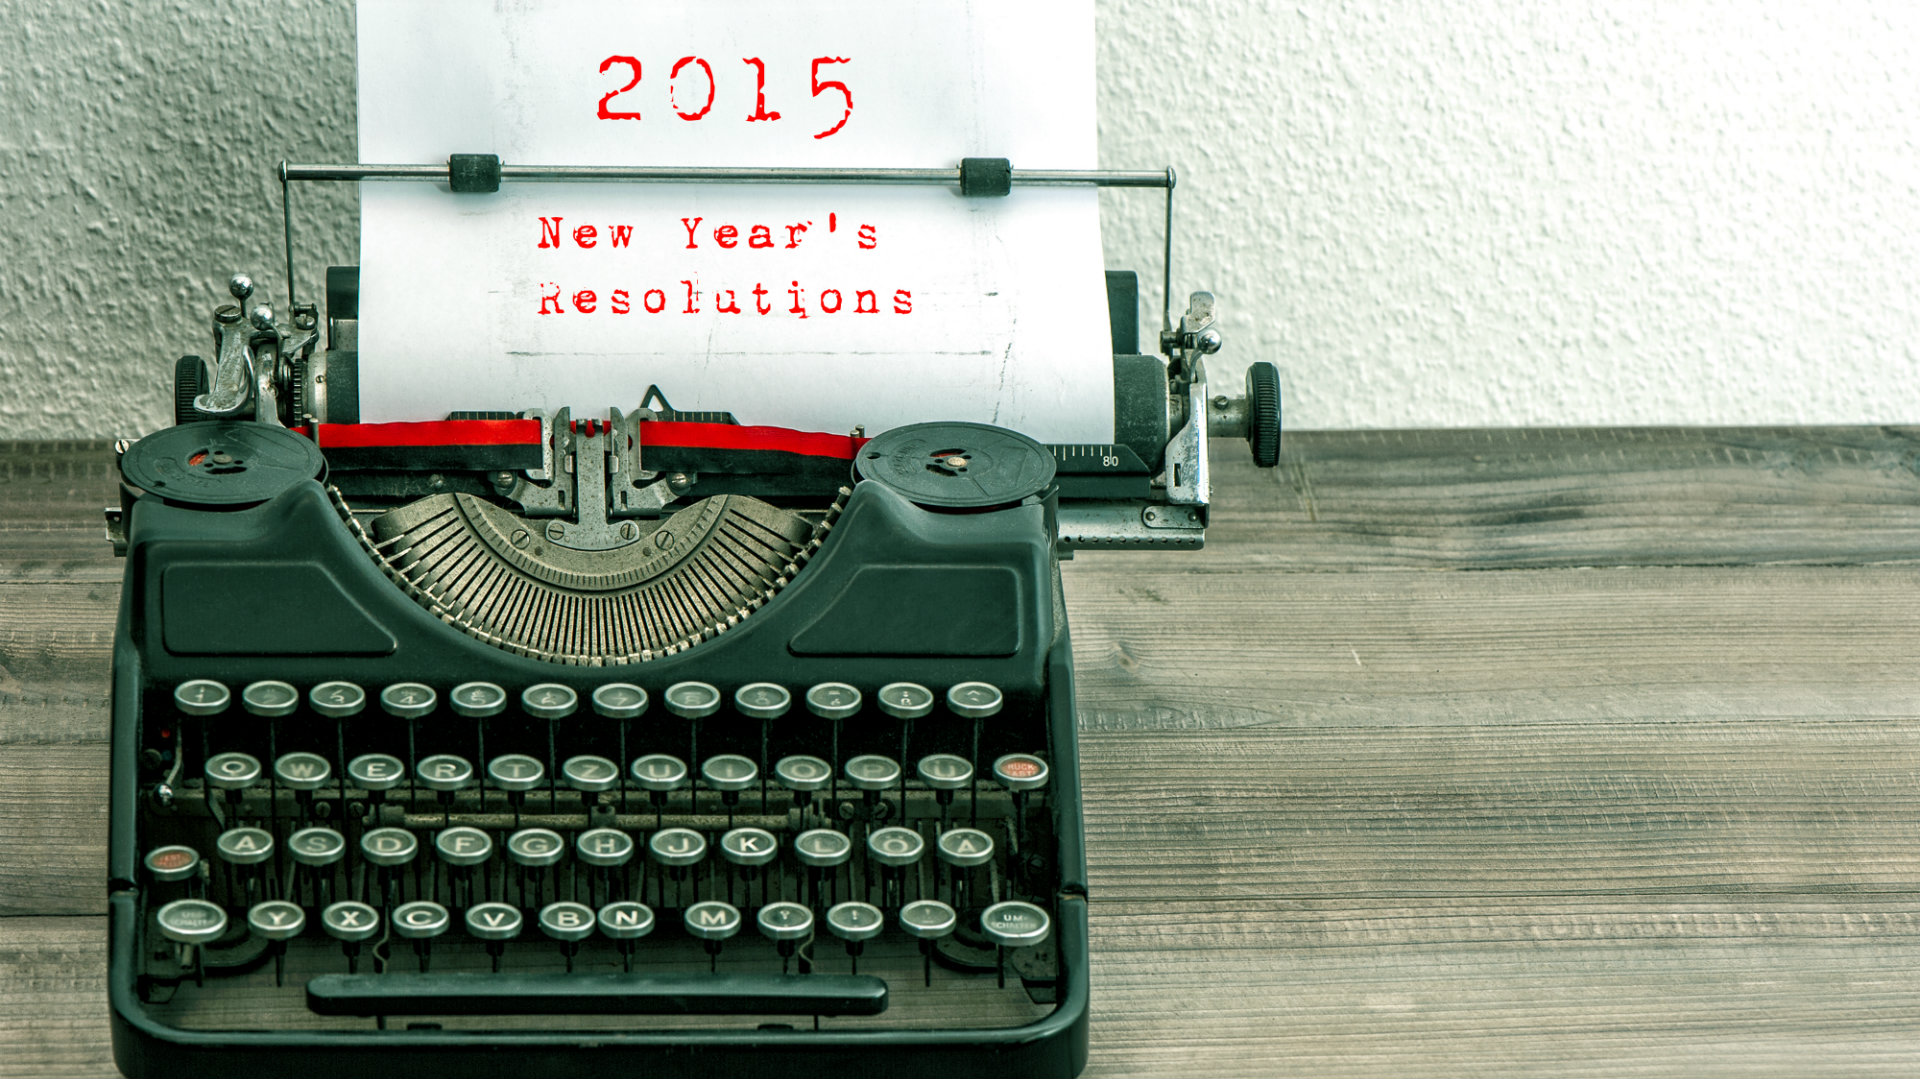 2015-new-years-resolutions-ss-1920